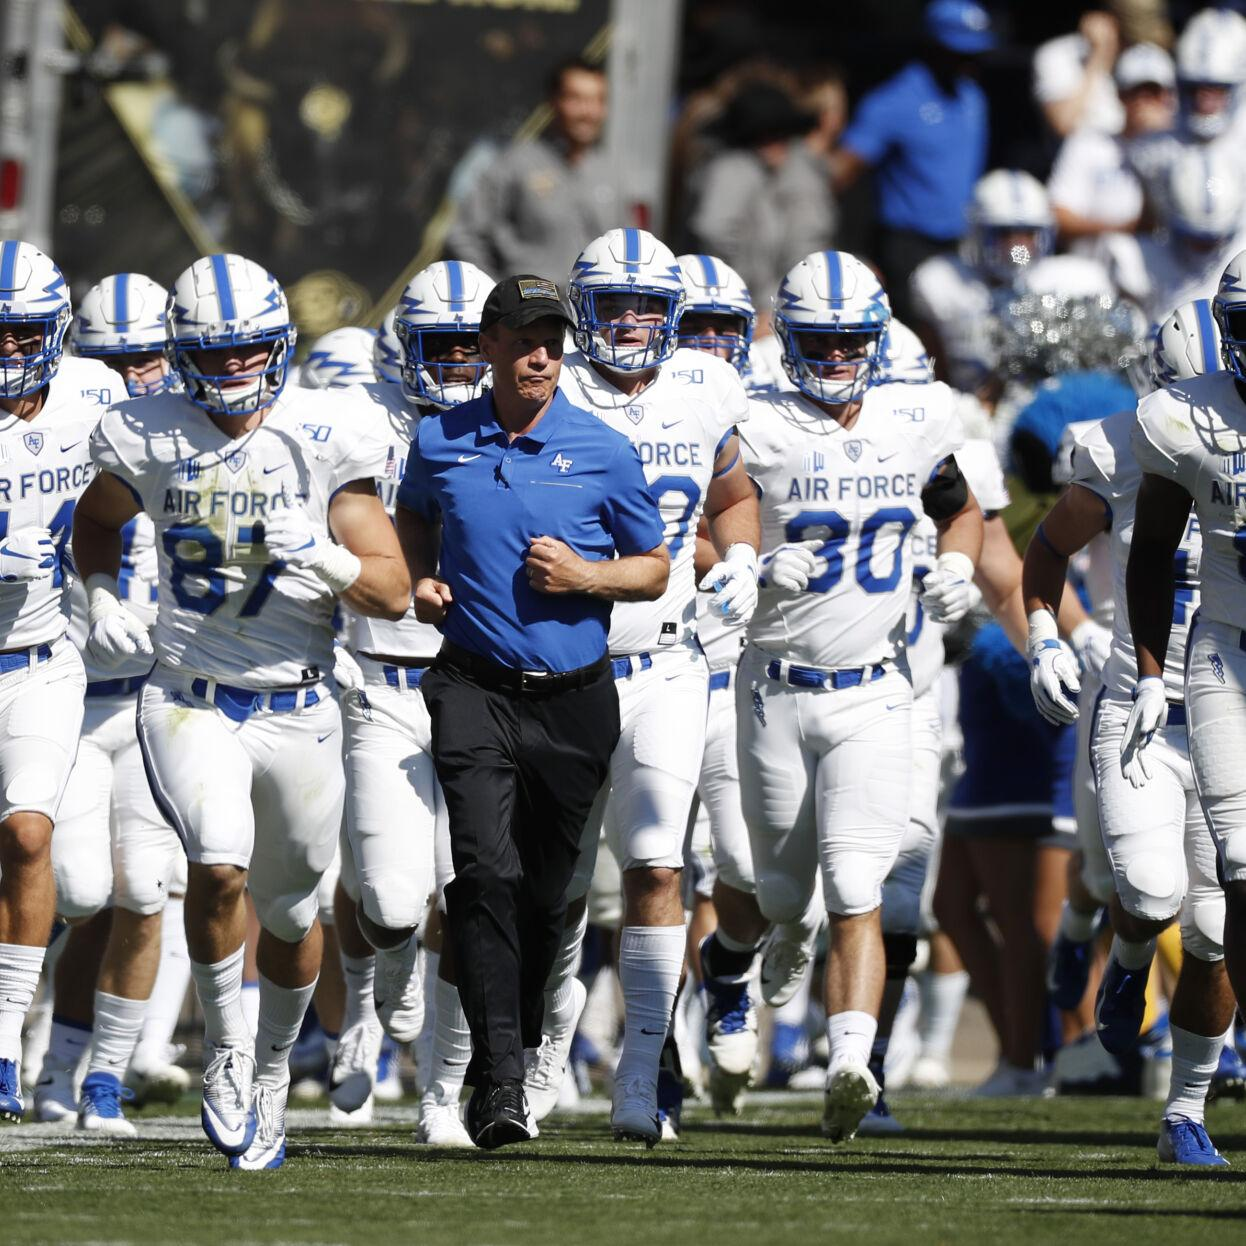 Air Force Remains Tight Lipped On Details Even As It Begins Promoting Possible Two Game Football Season Sports Coverage Gazette Com